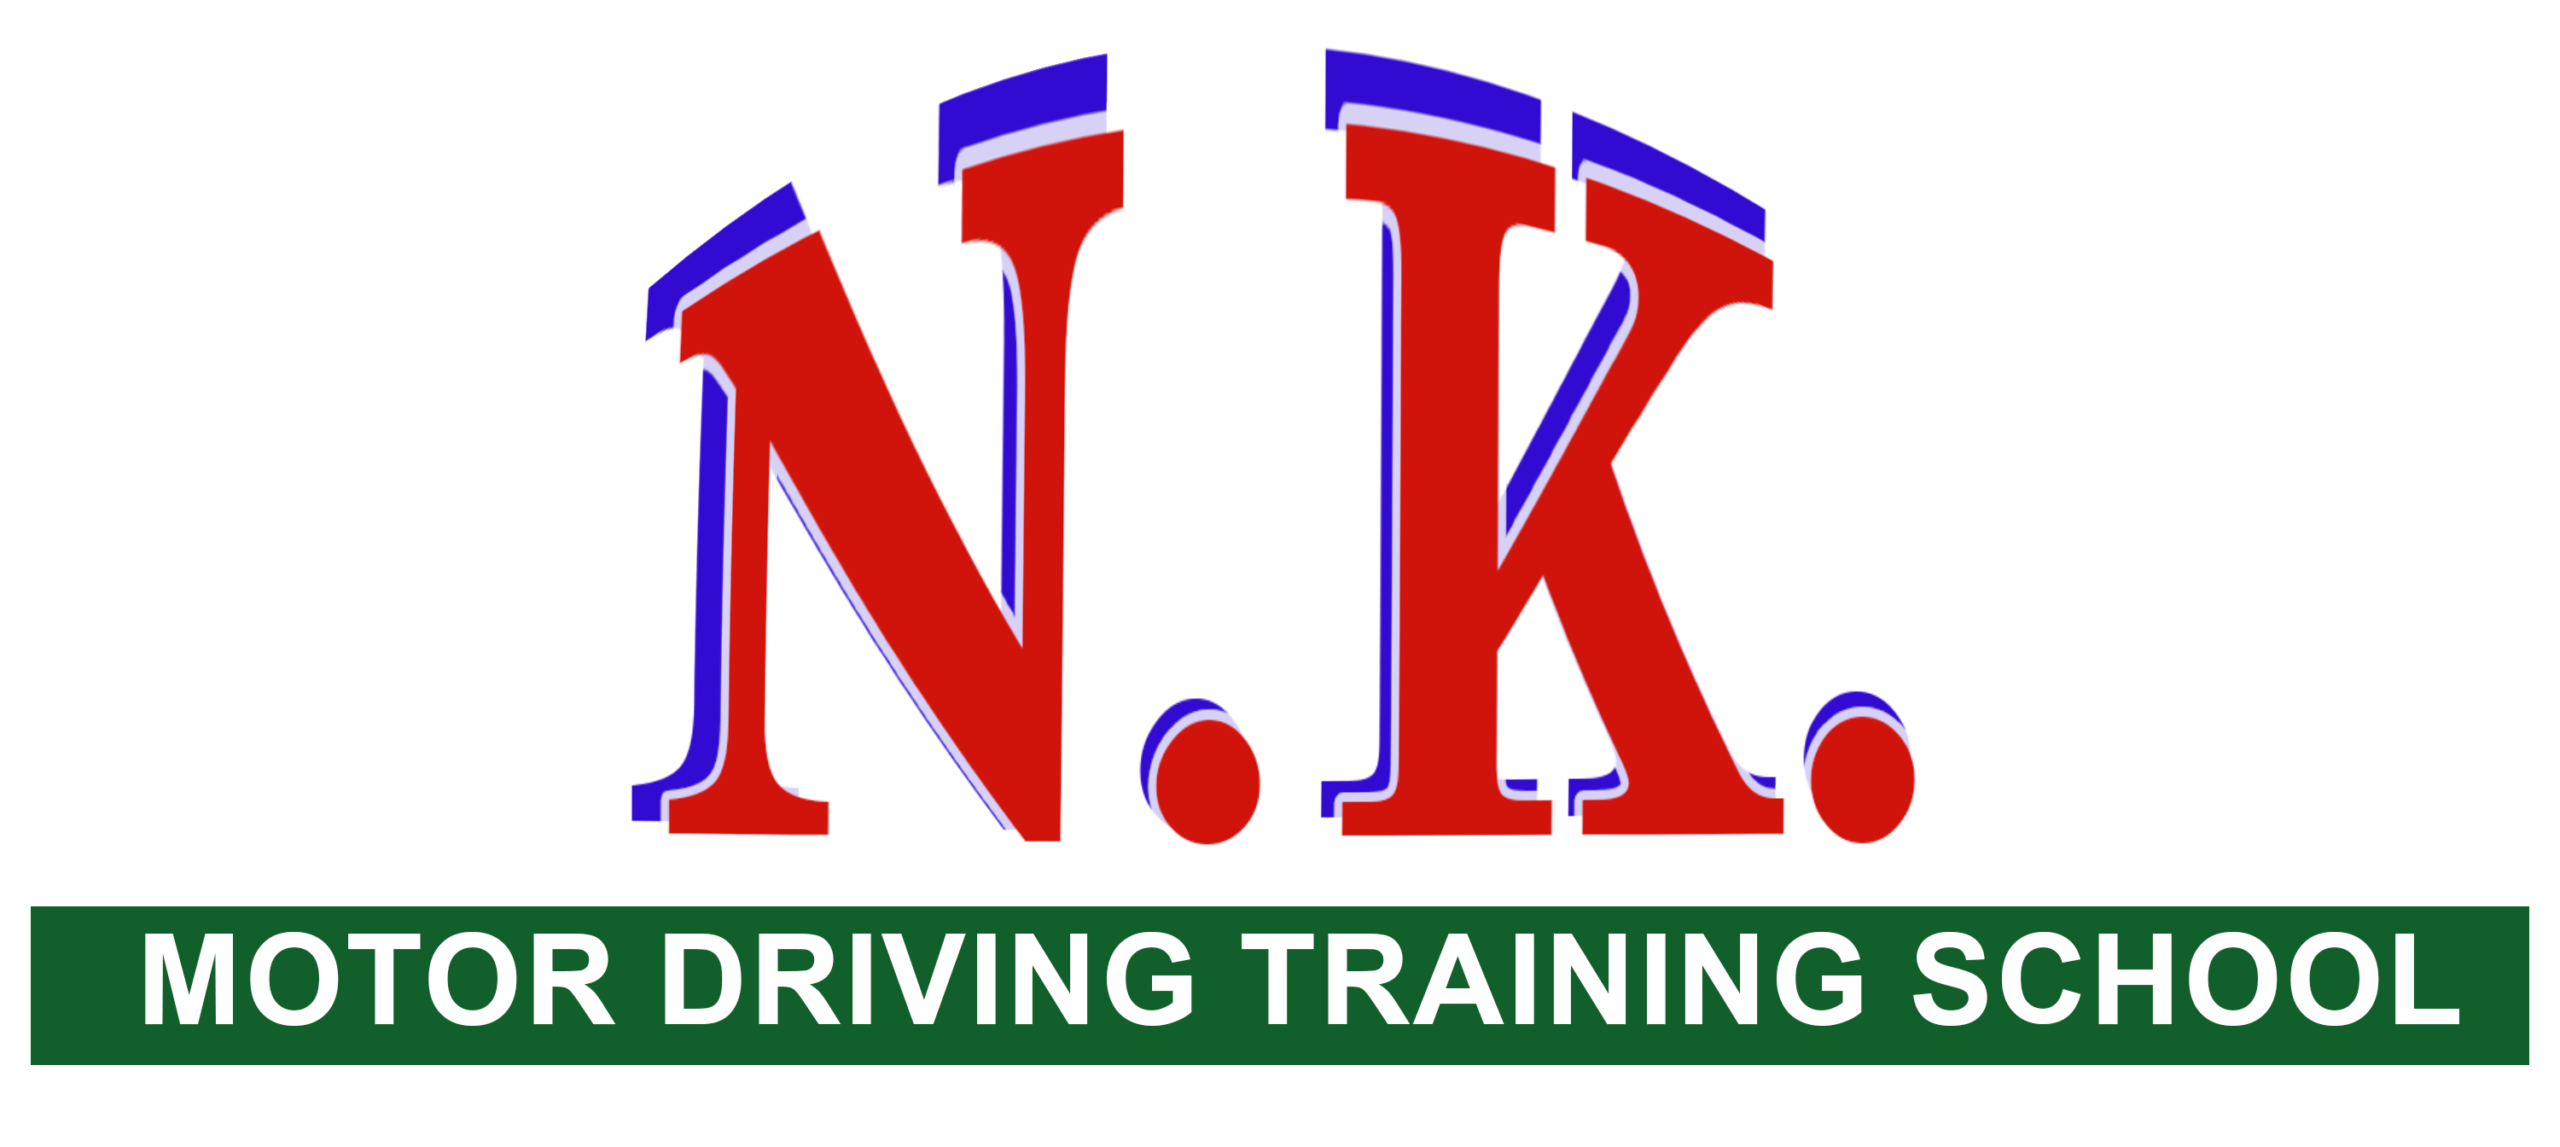 N K Motor Driving Training School –